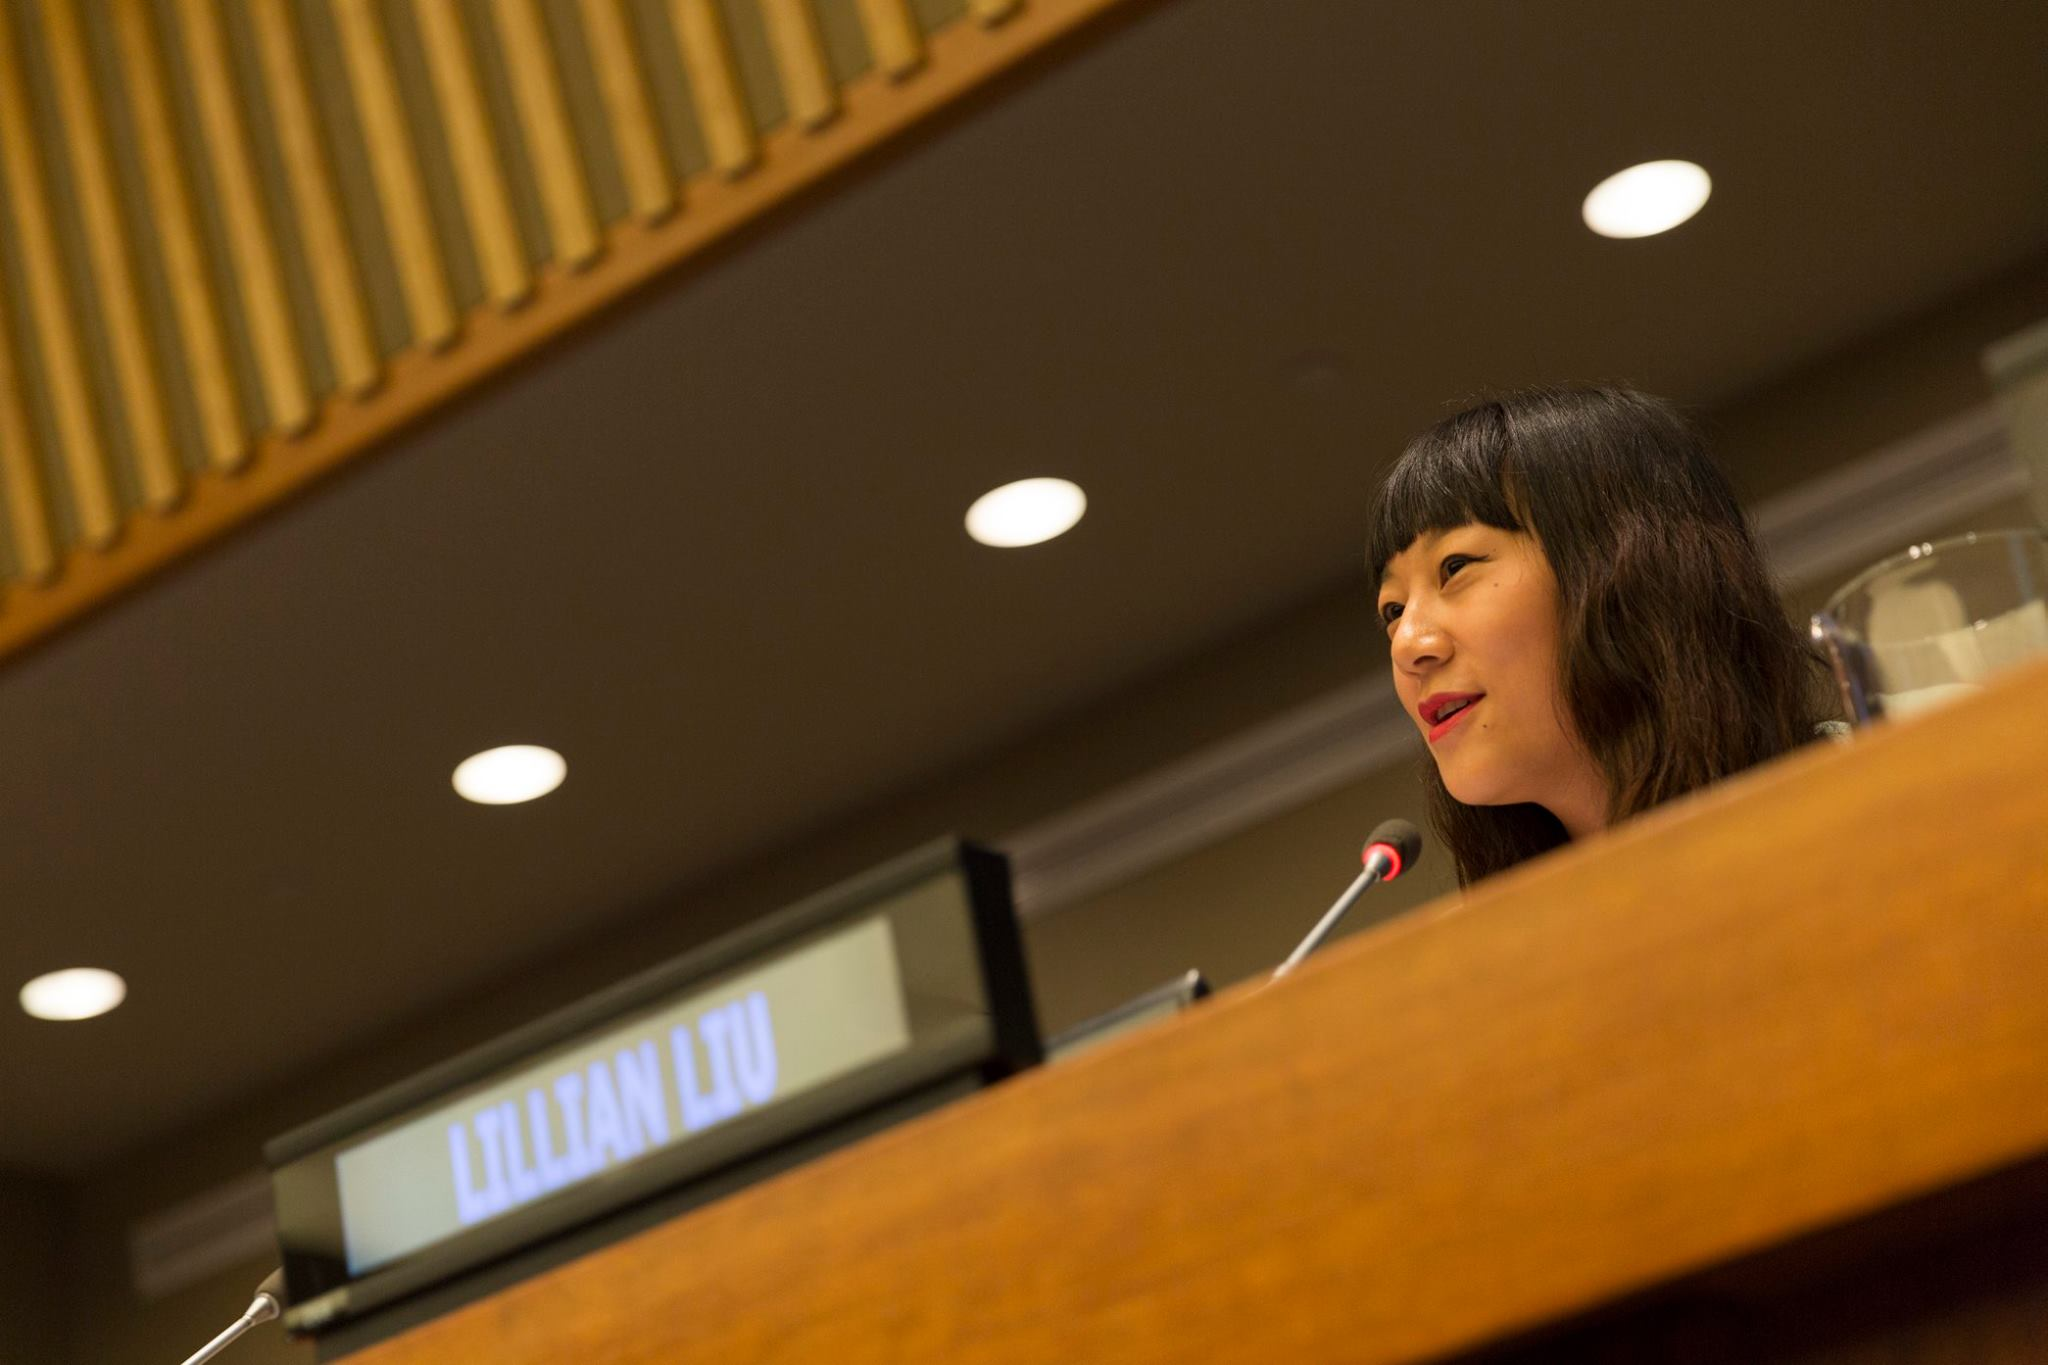 Lilian Liu, manager of partnerships & UN relations at the United Nations Global Compact